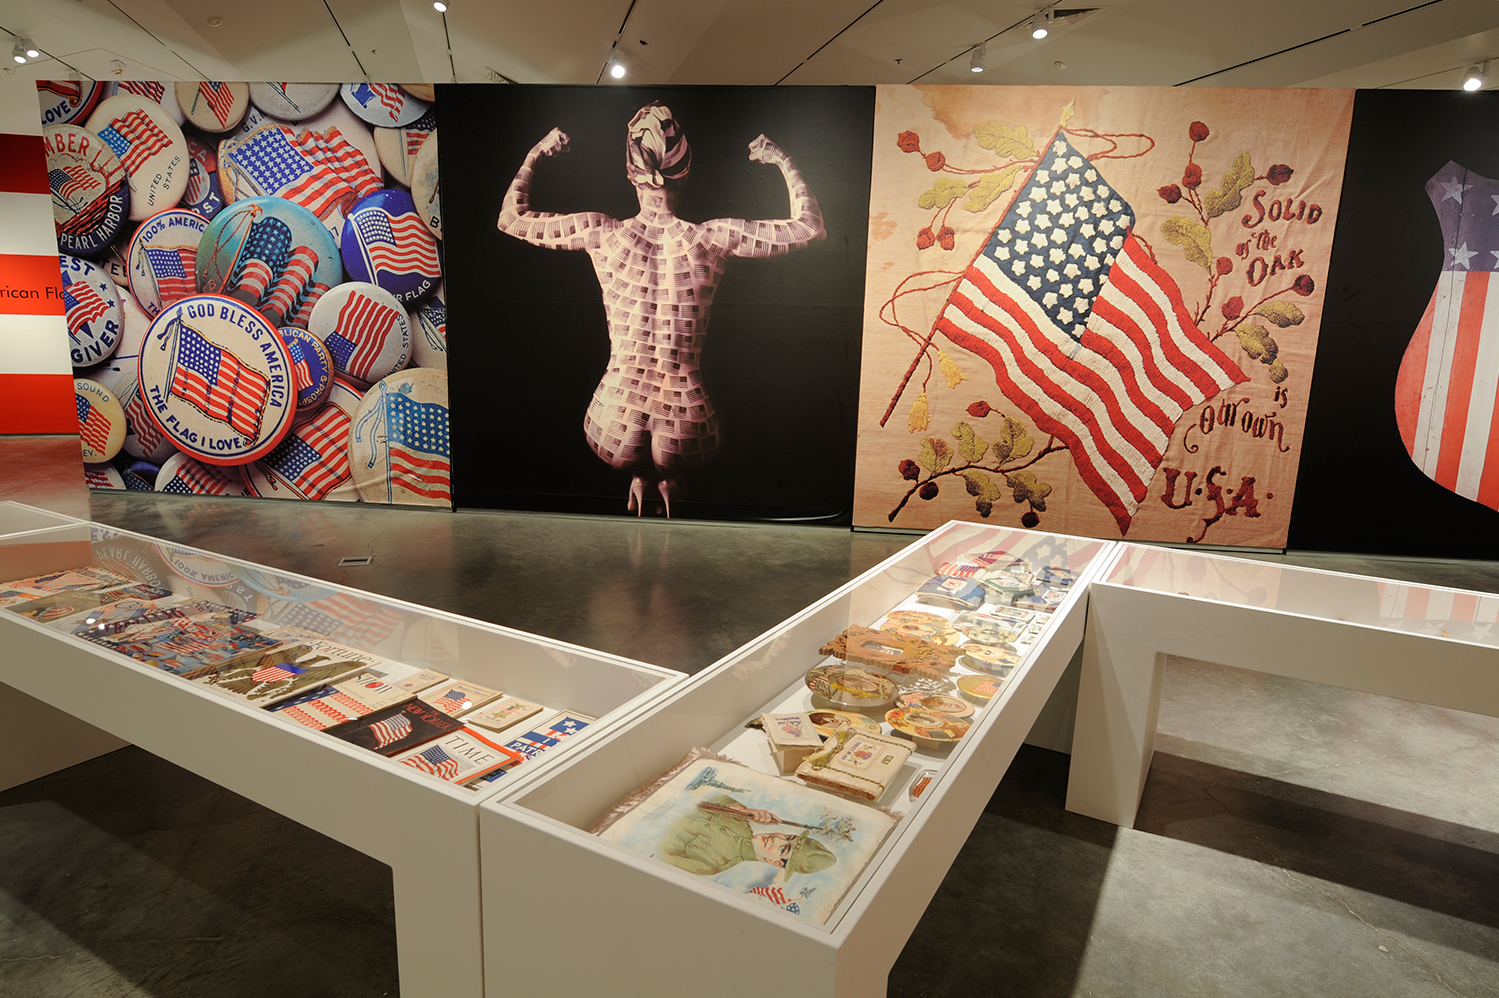 Ten-foot-tall blow-up photographs of pieces in the collection serve as a counterpoint to the actual artifacts in the vitrines.